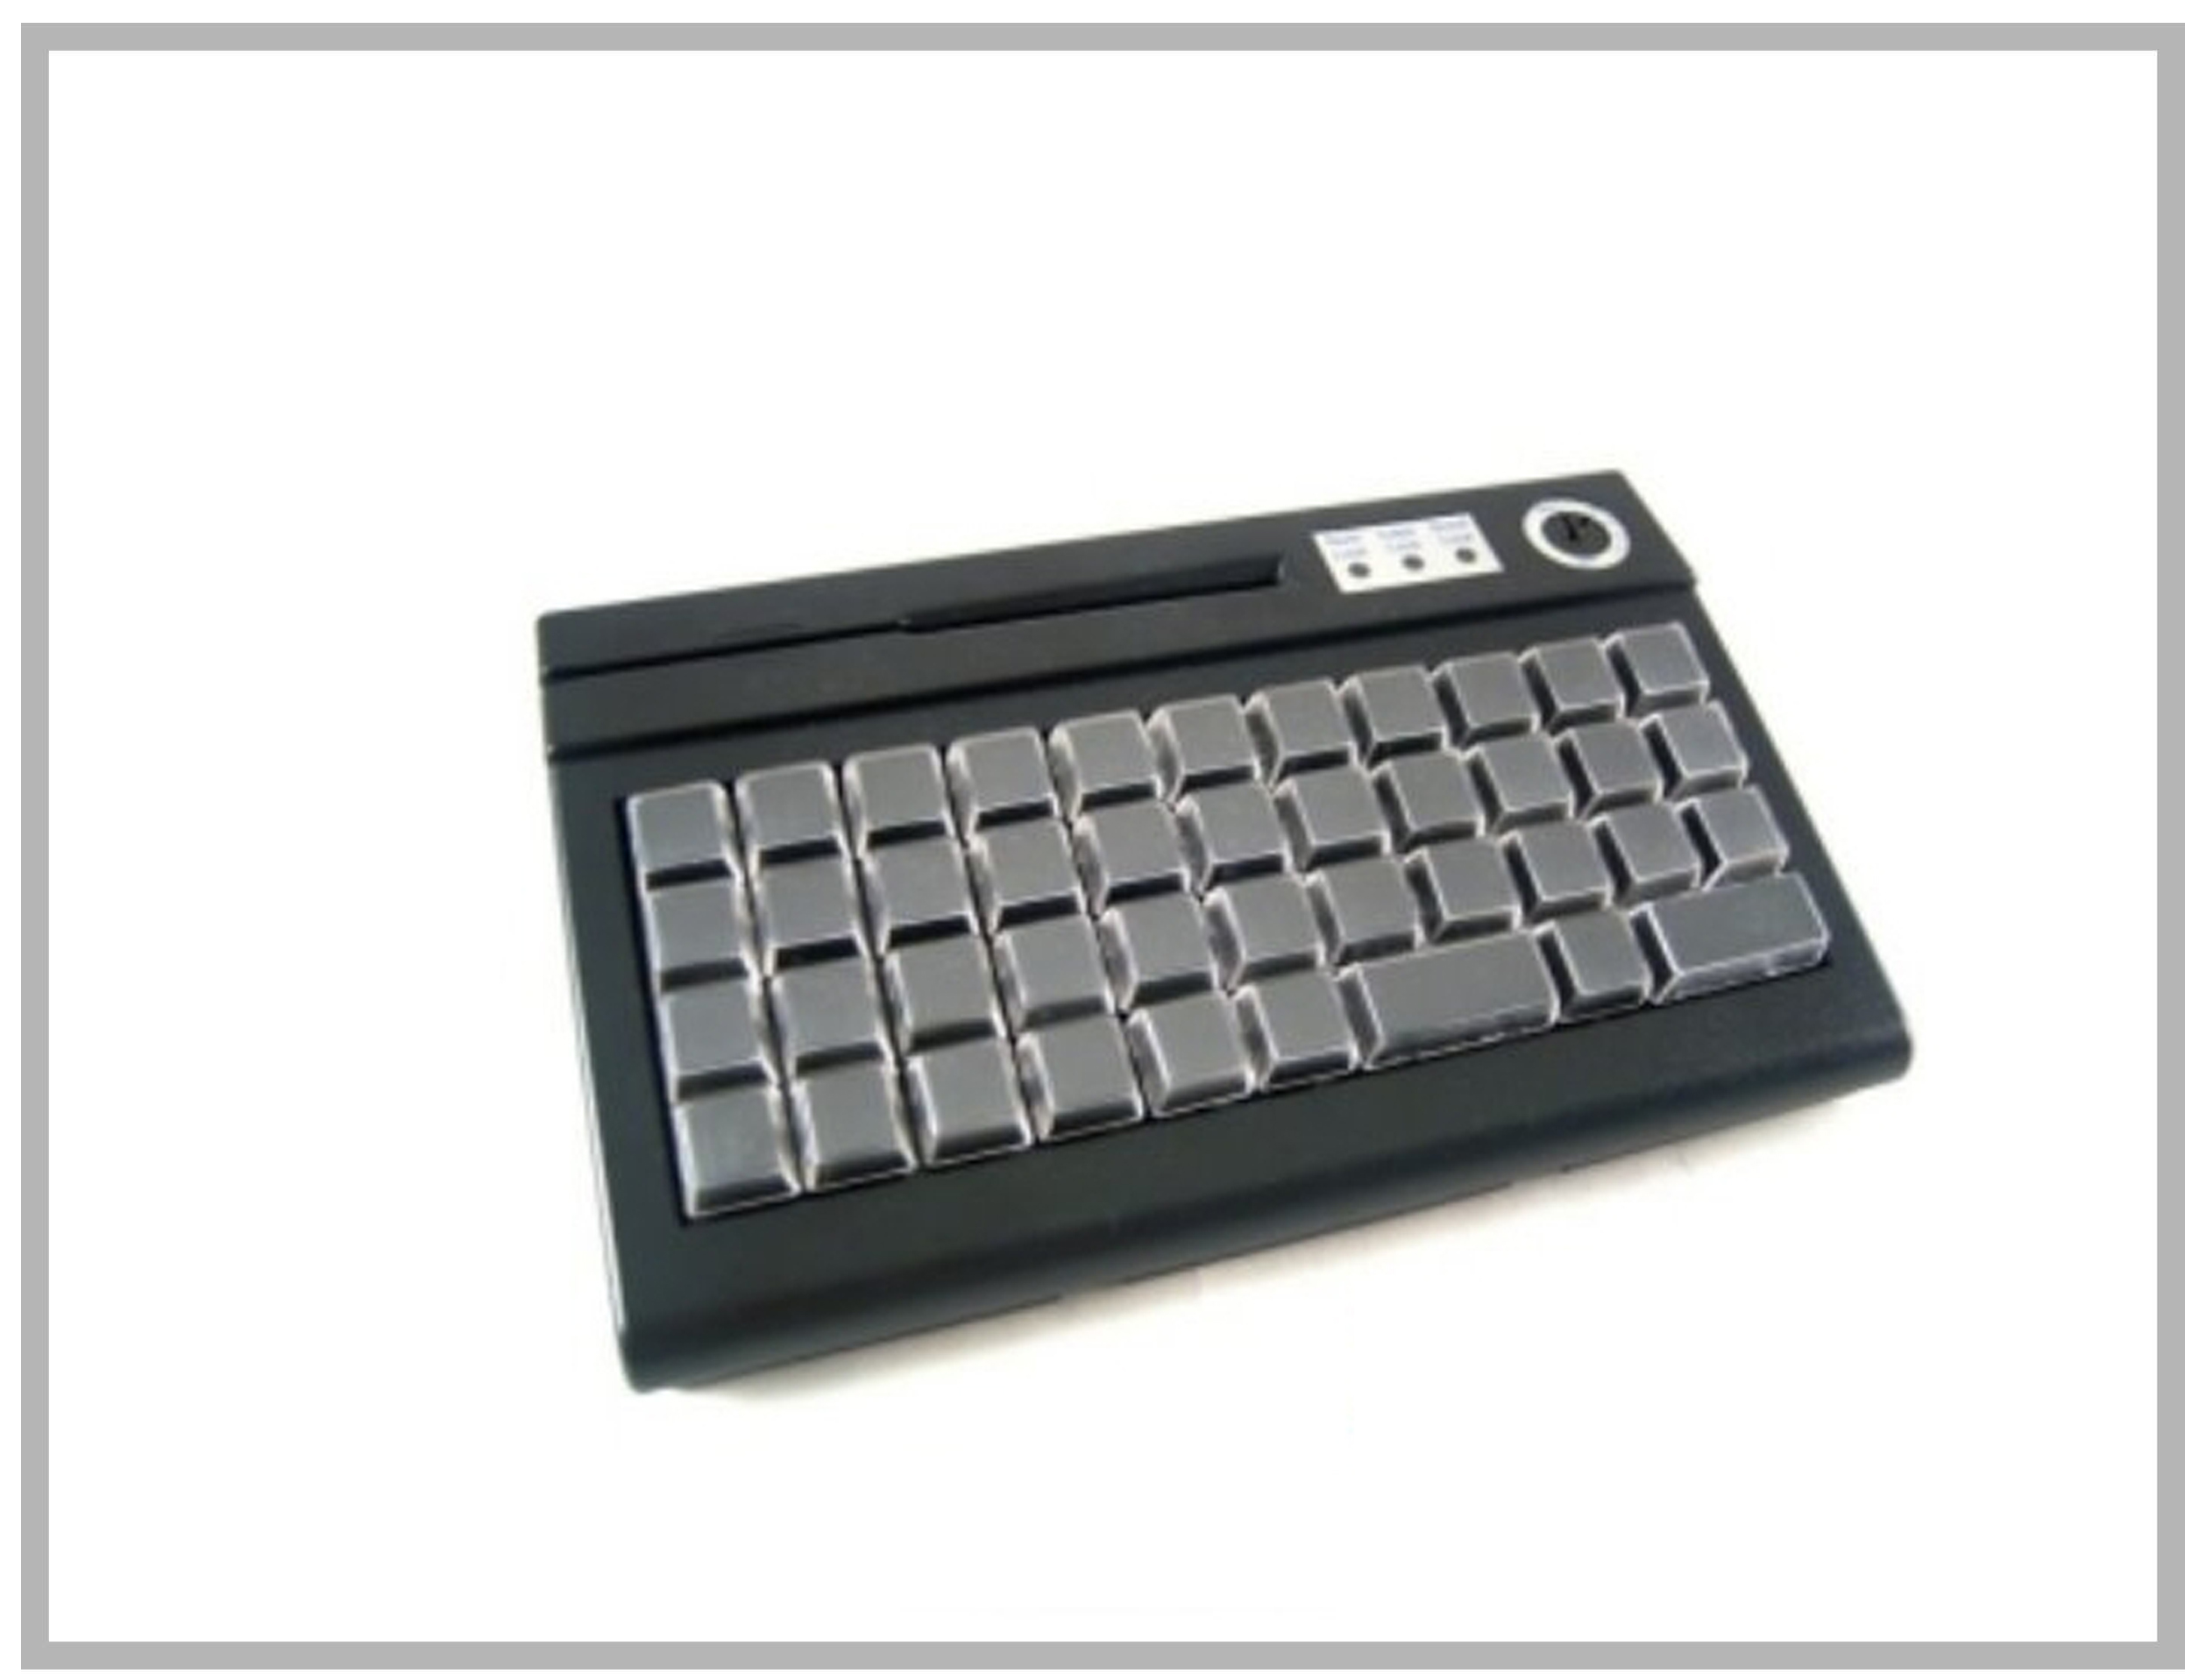 Clavier programmable PKB-07